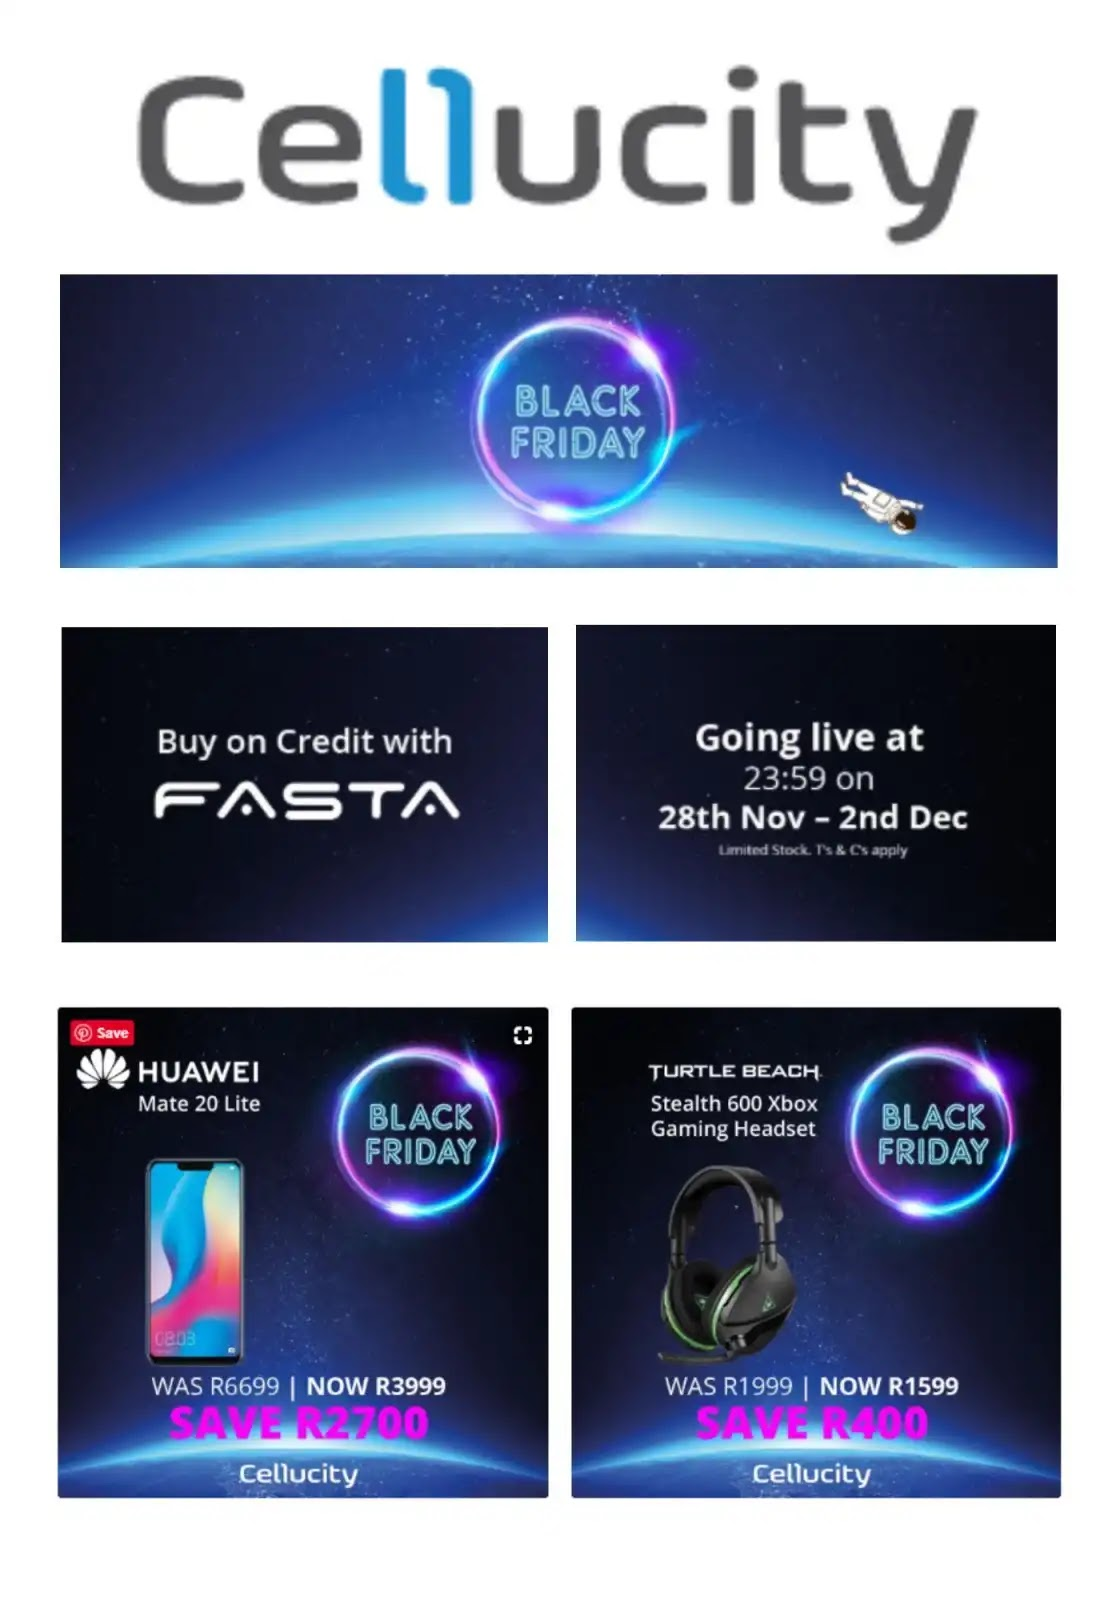 Cellucity Black Friday Deals in SA